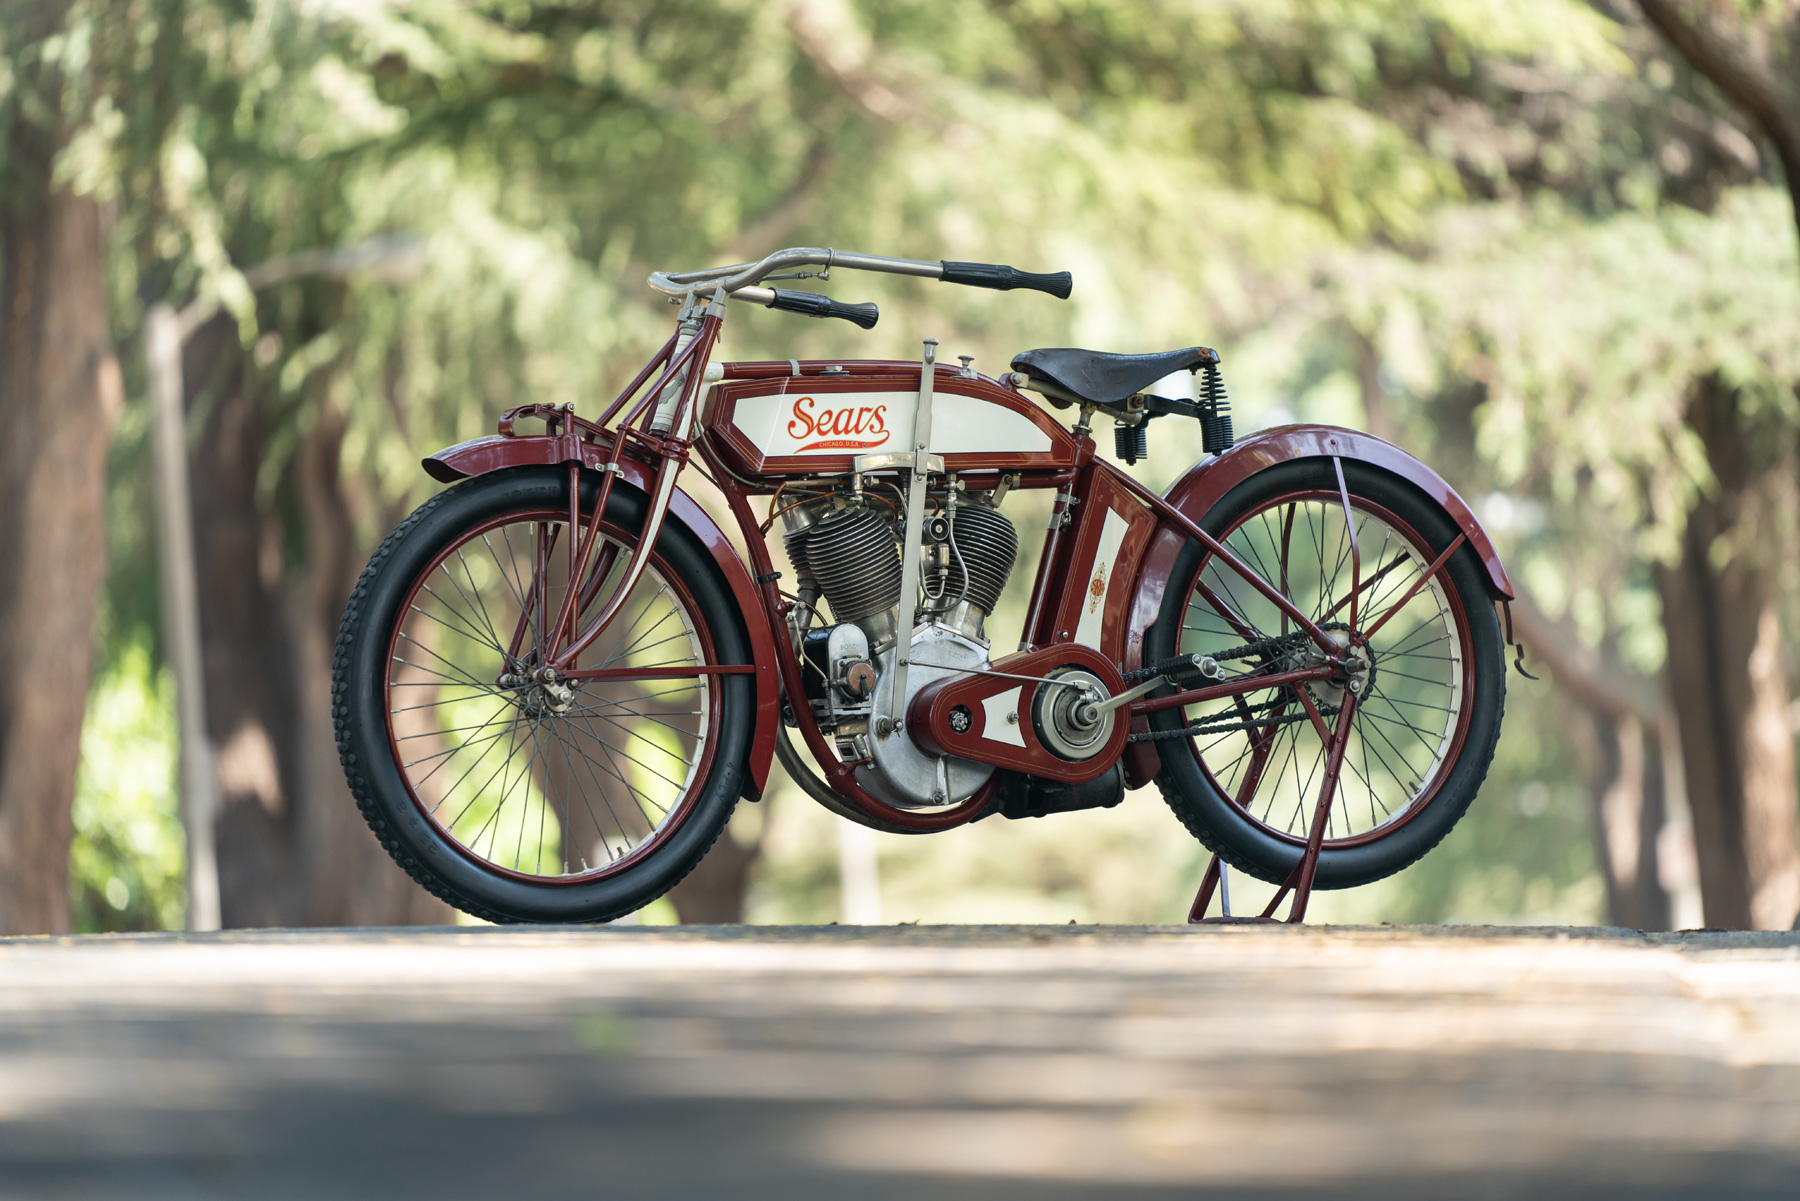 1912 Sears Dreadnaught V-twin